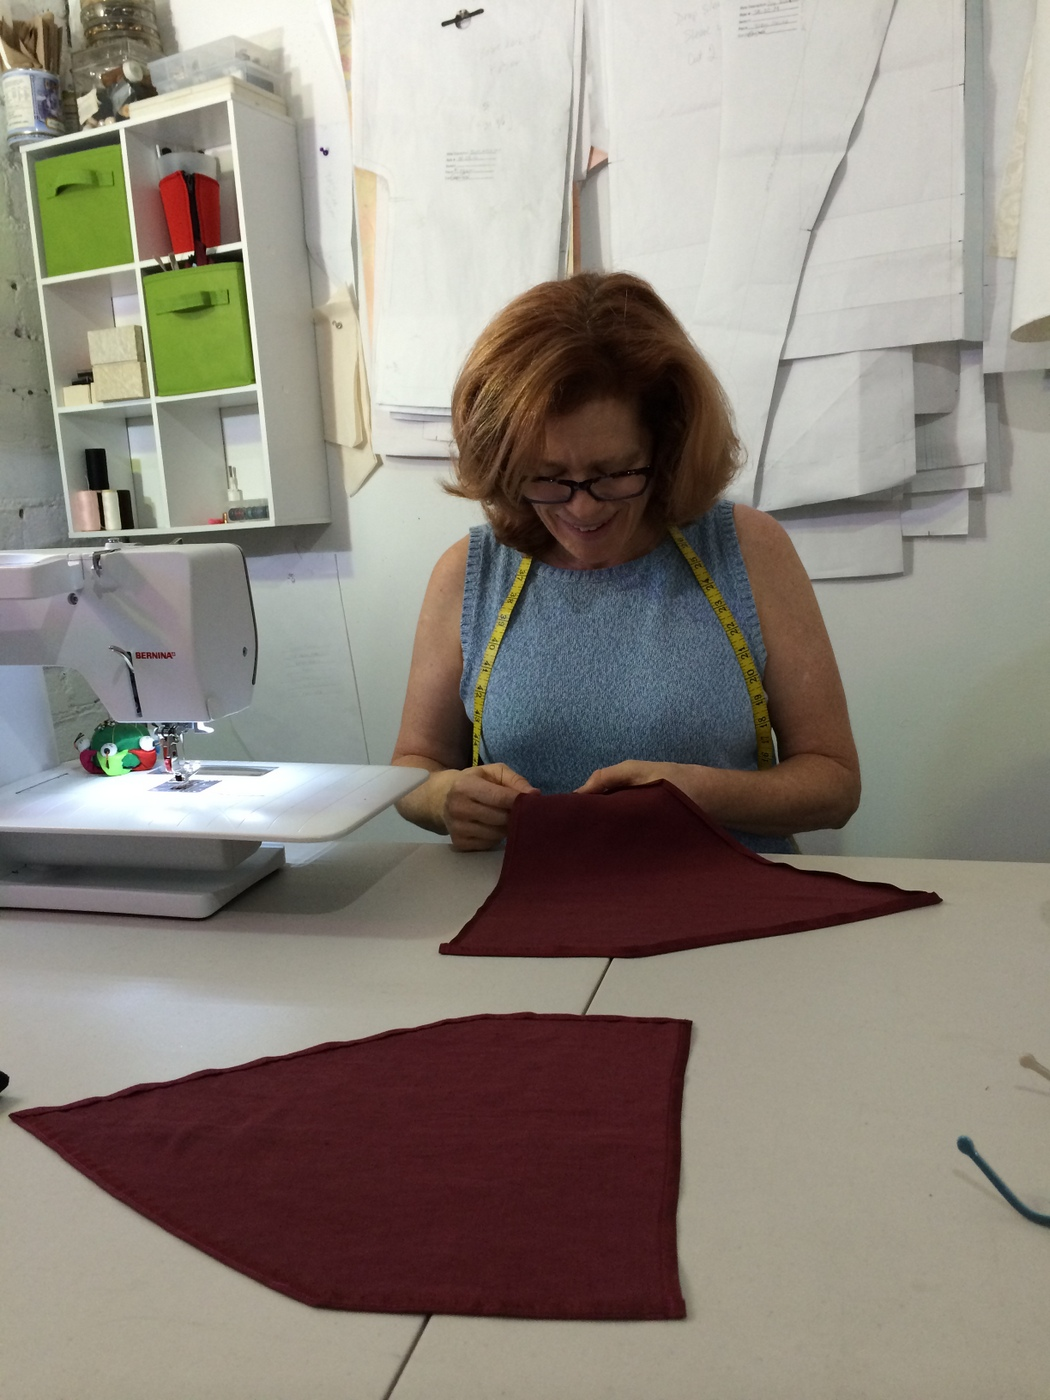 laura-working-courtesy-of-laura-tanzer-2